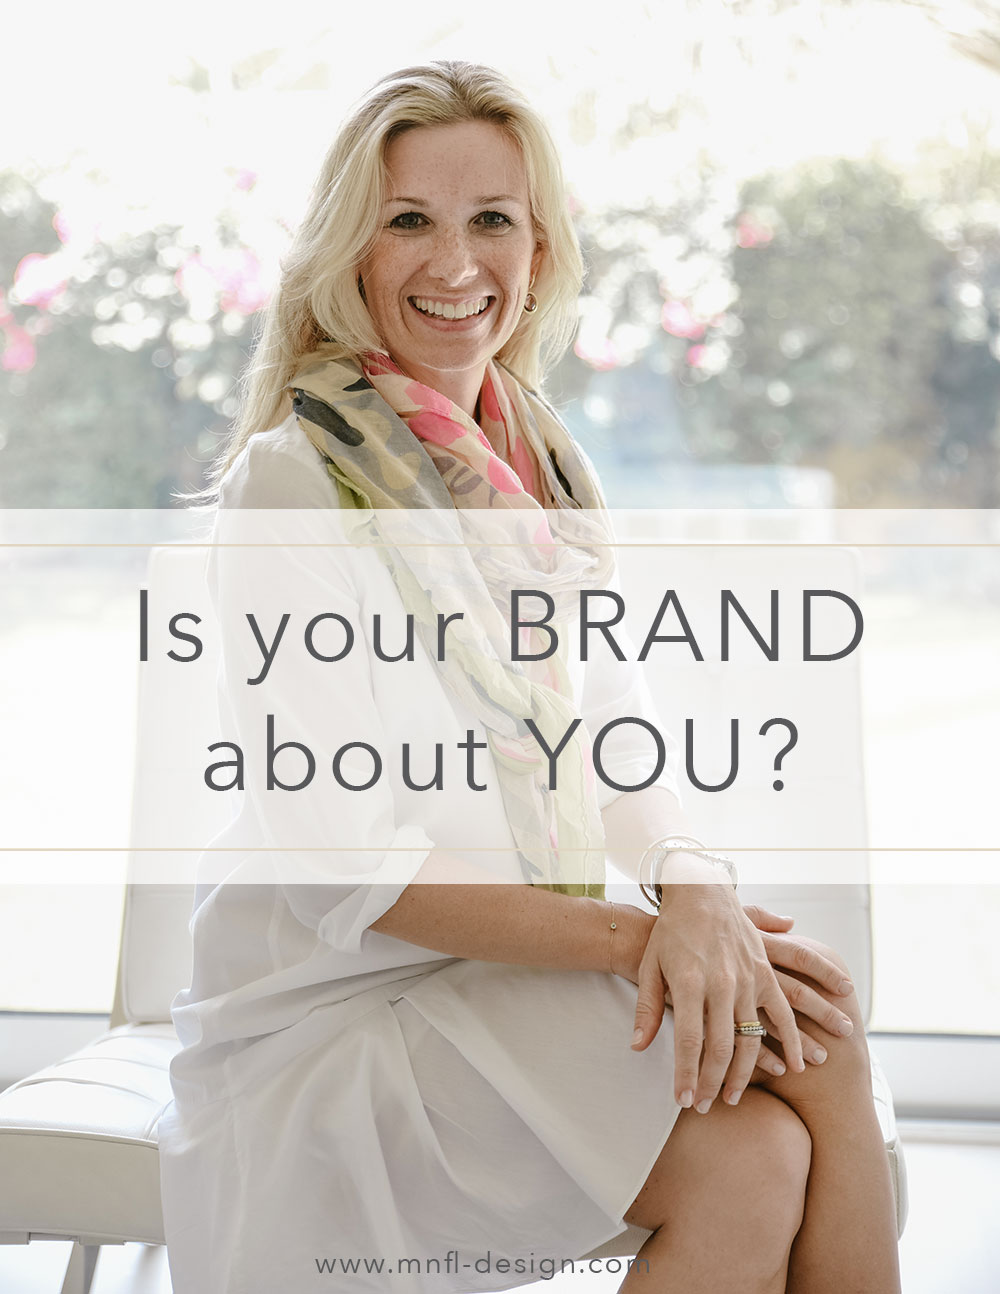 Is Your Brand About You? | Personal Branding | MNFL Design